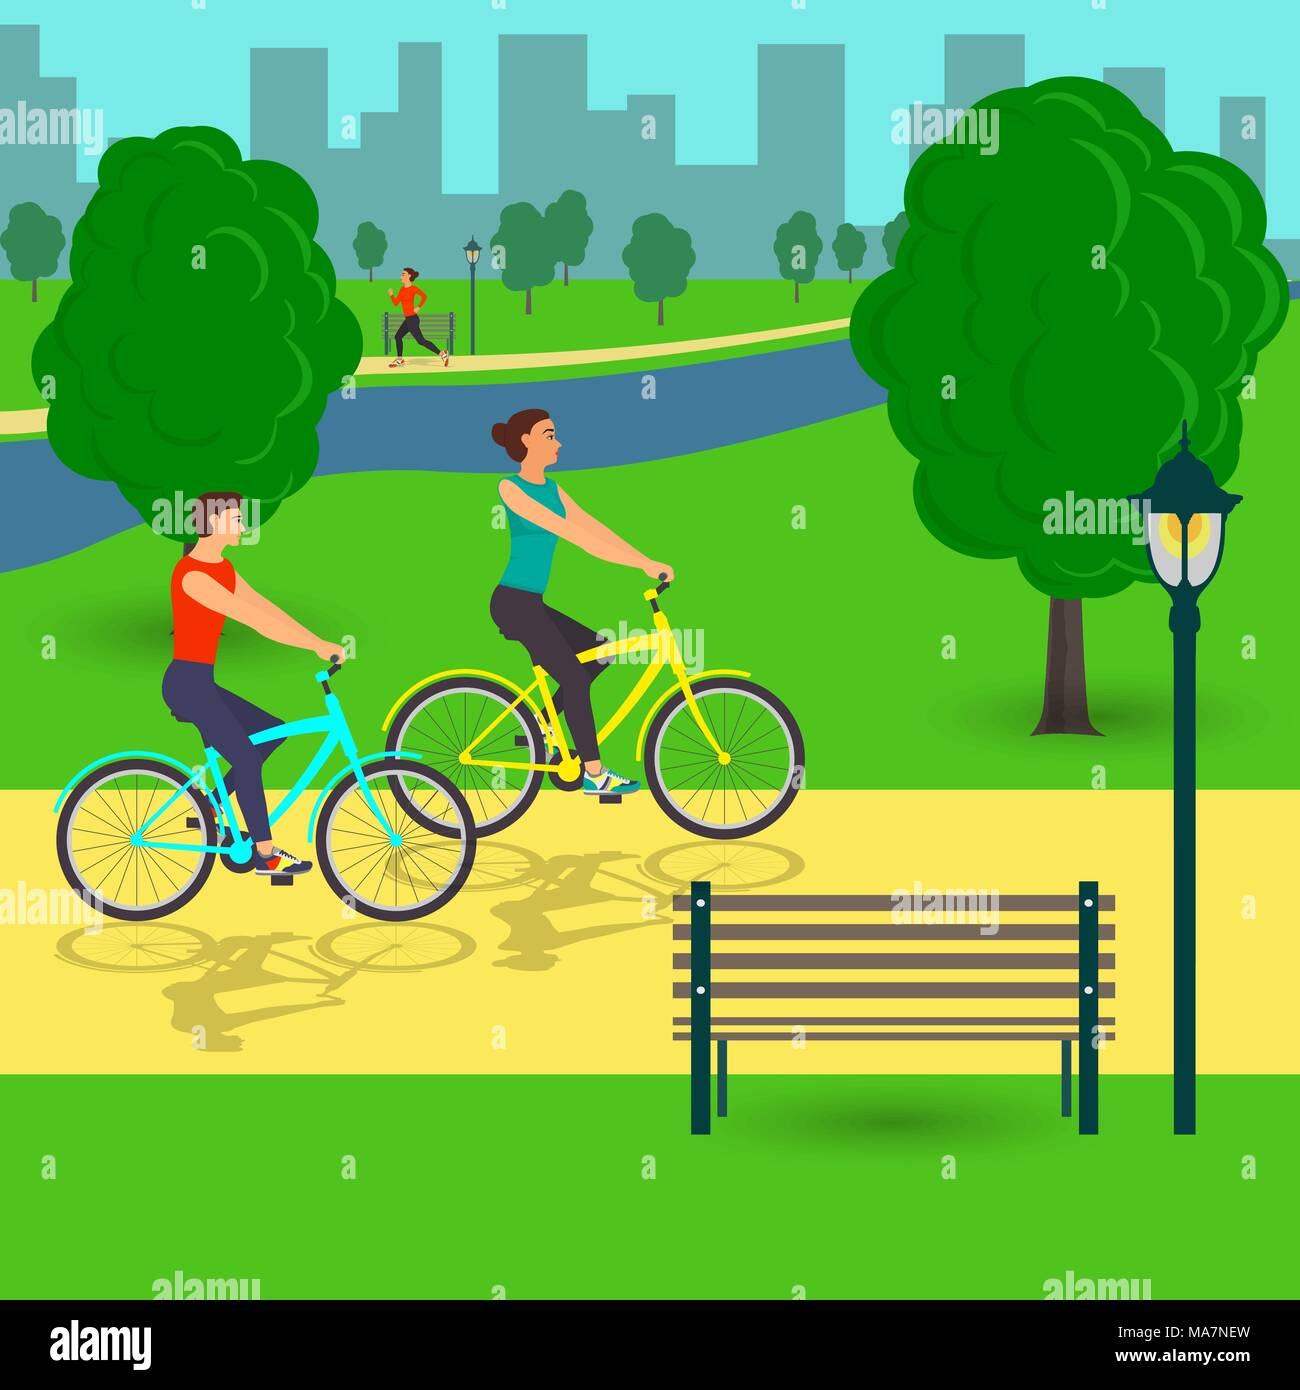 Man and woman on bicycles in the park. Flat vector illustration - Stock Vector